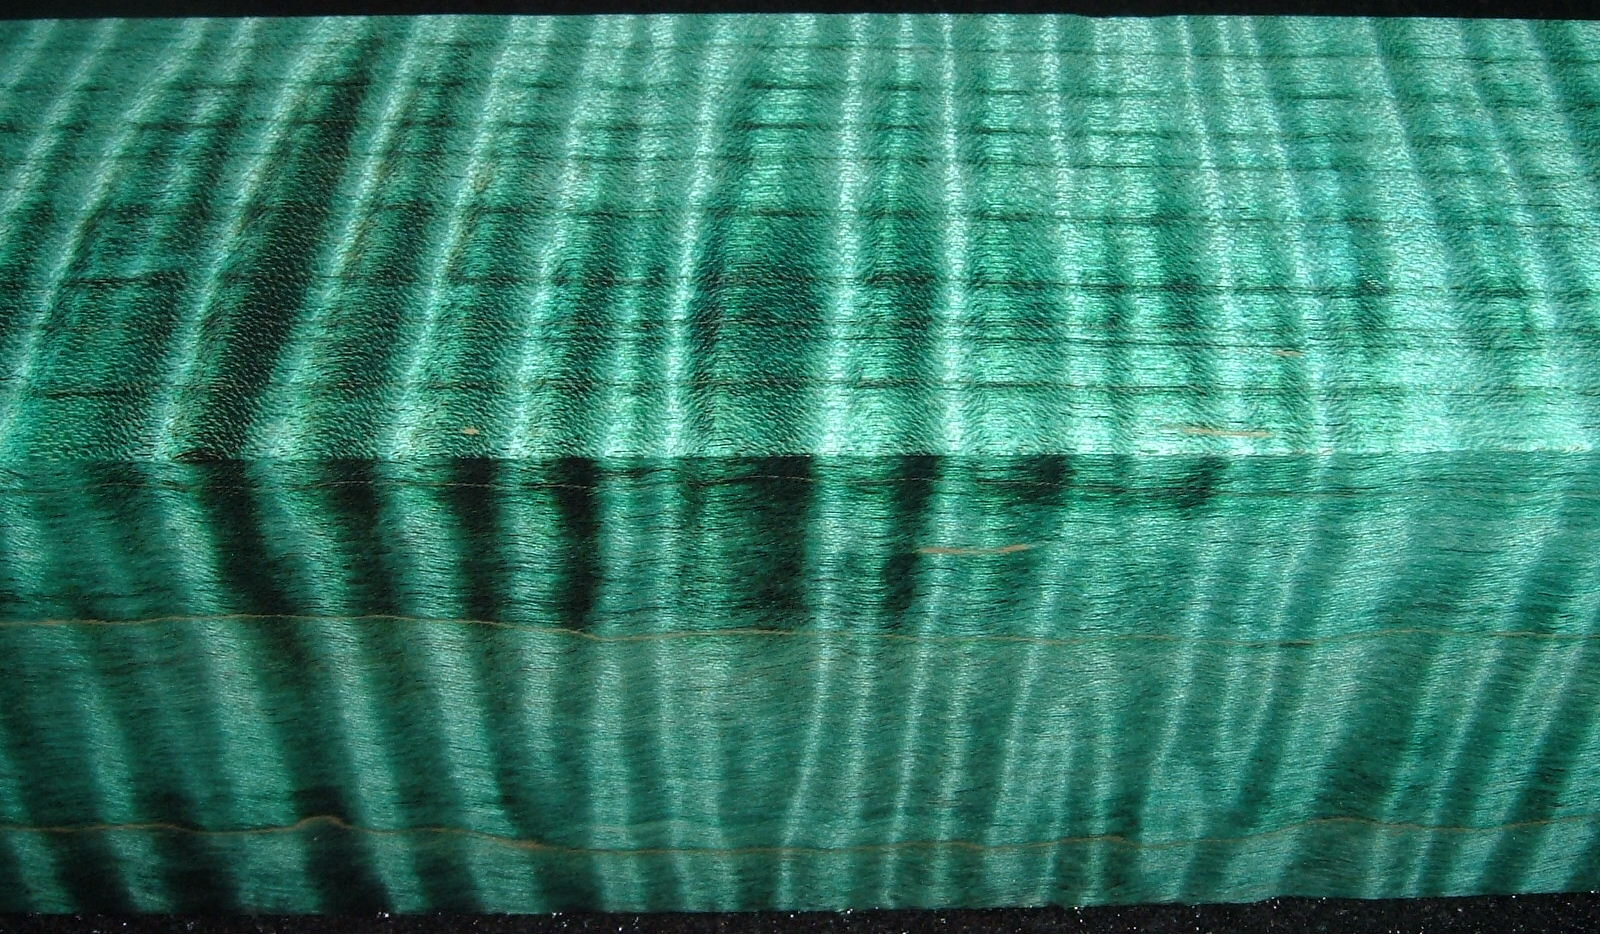 Z524, 1-7/8x1-7/8x6-1/2, Teal, Curly Tiger Maple Dyed Stabilized, wood turning block